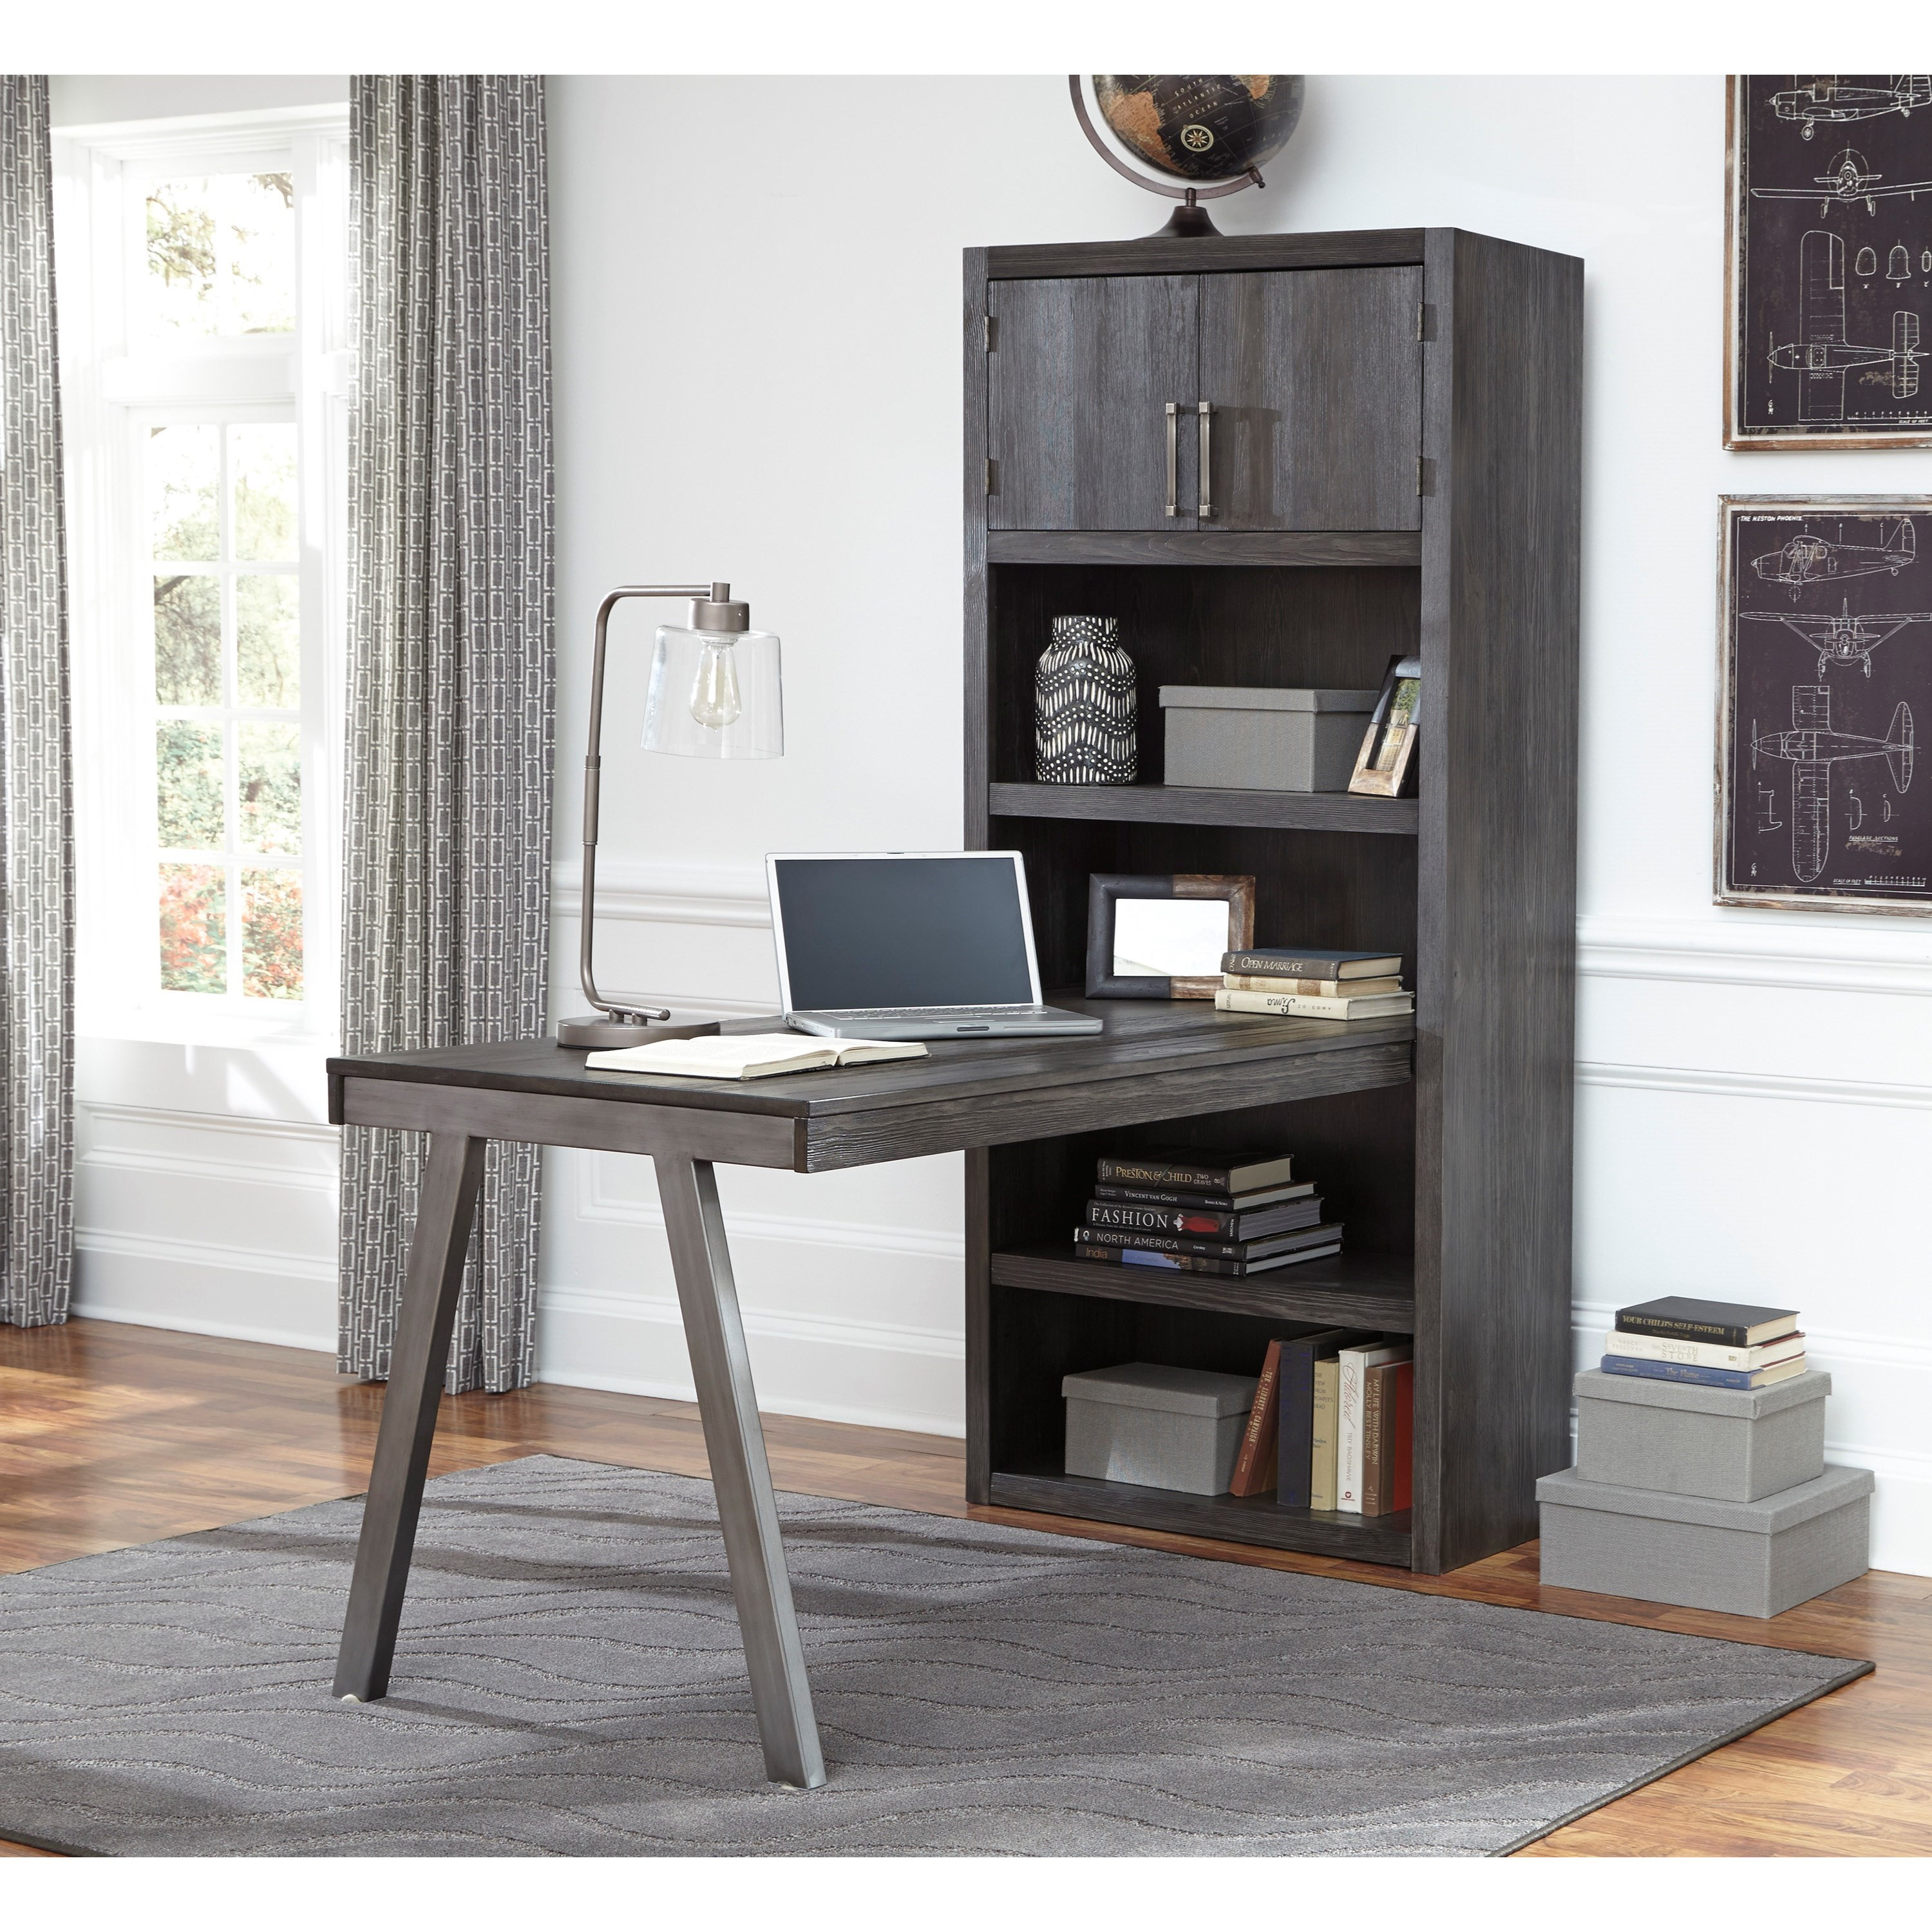 Signature Design By Ashley Raventown Contemporary Metal Wood Desk Return Large Bookcase In